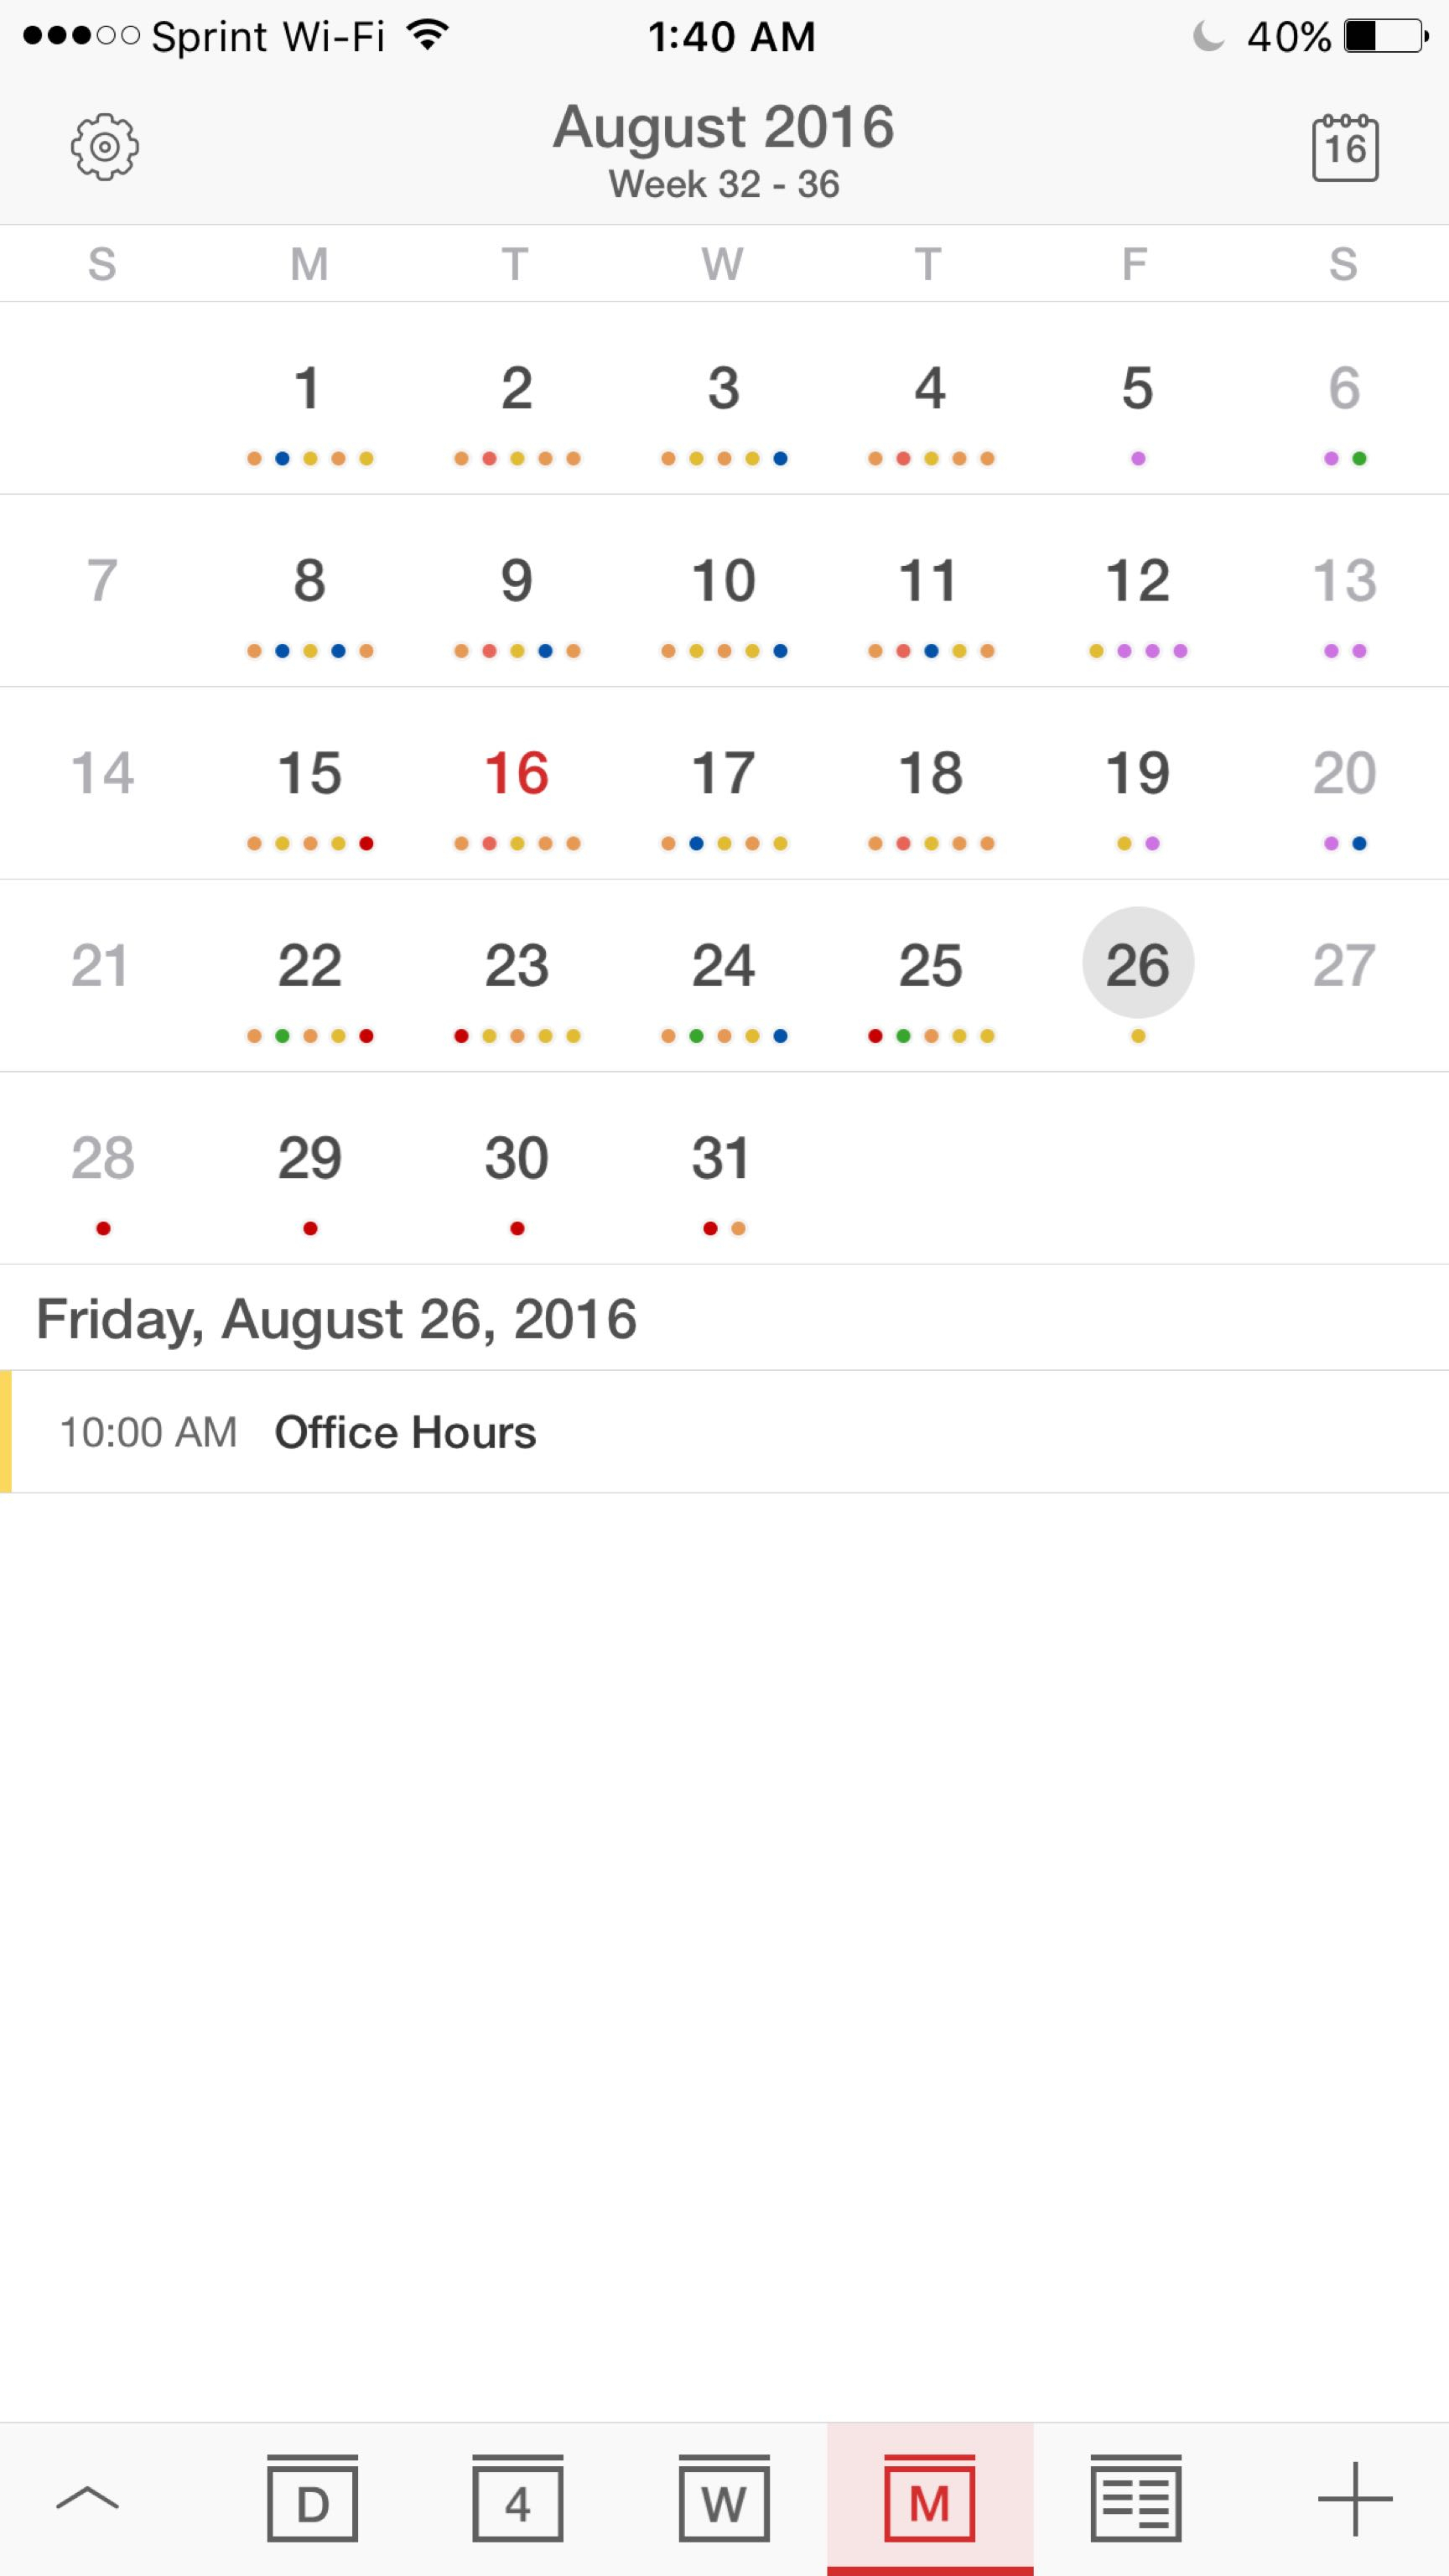 I'm Ok With The Iphone Calendar App, But Is There A Way To